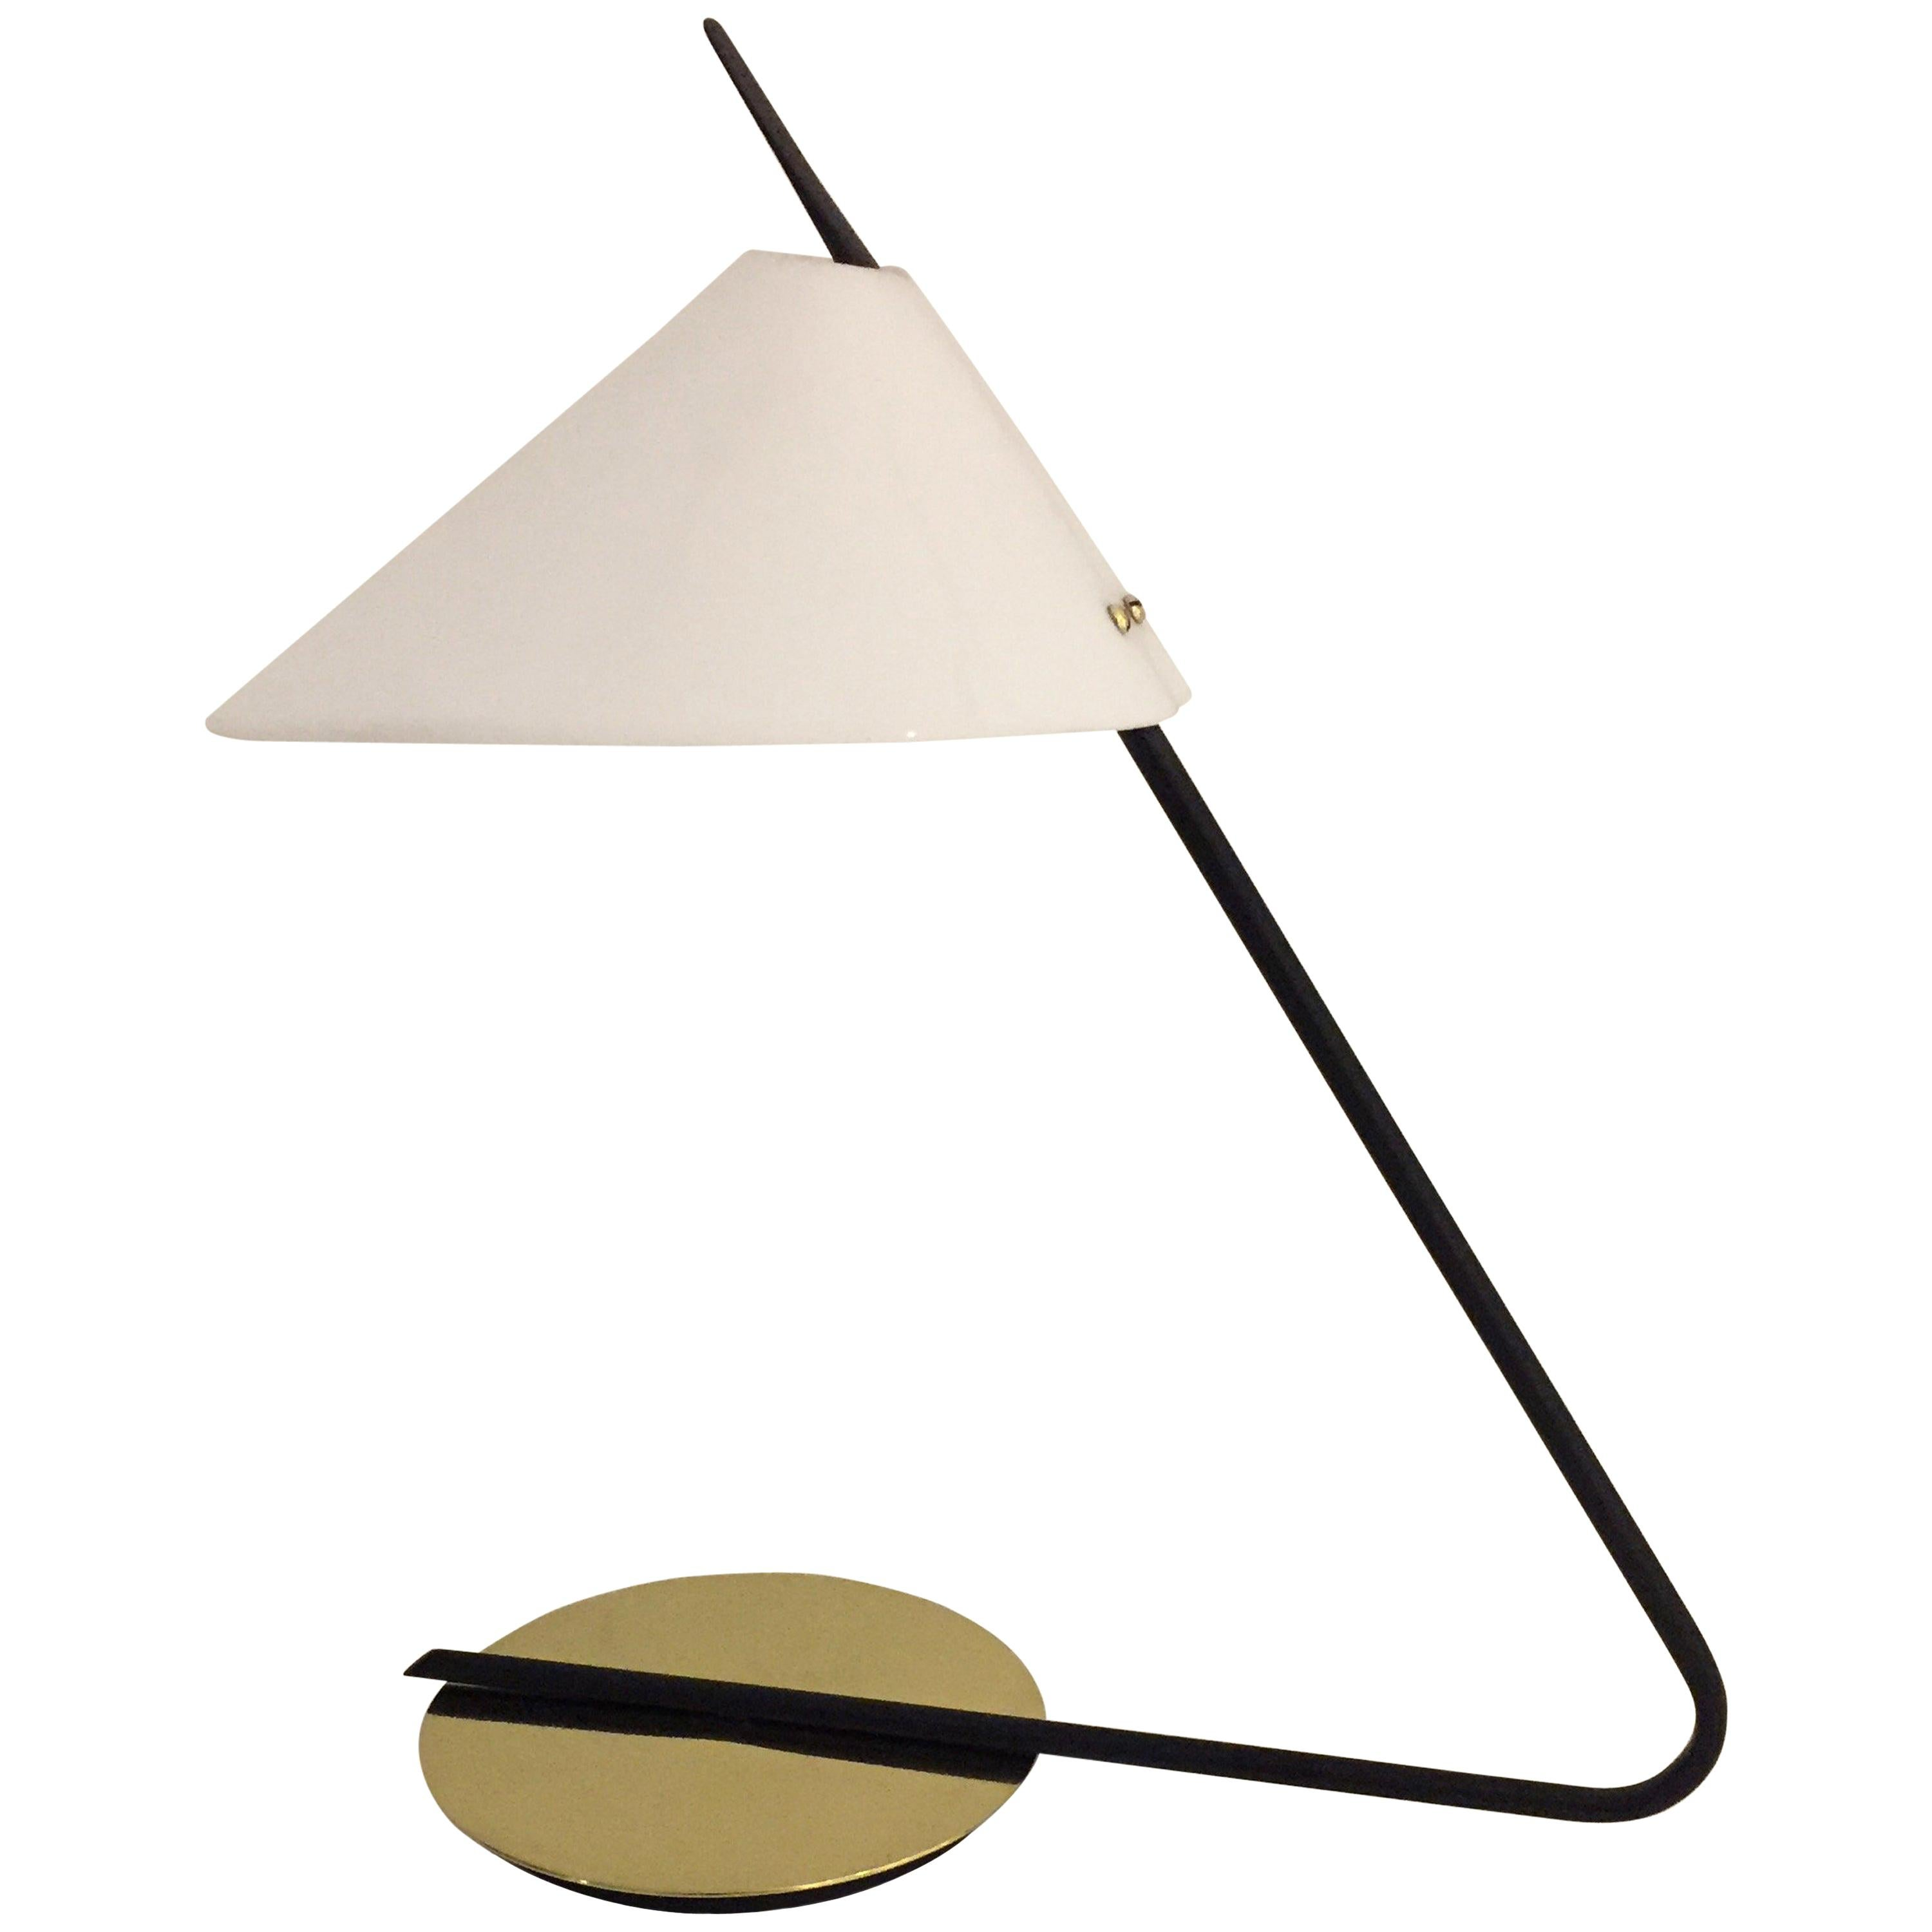 Passy Primo Table Lamp, Large Model by Bourgeois Boheme Atelier